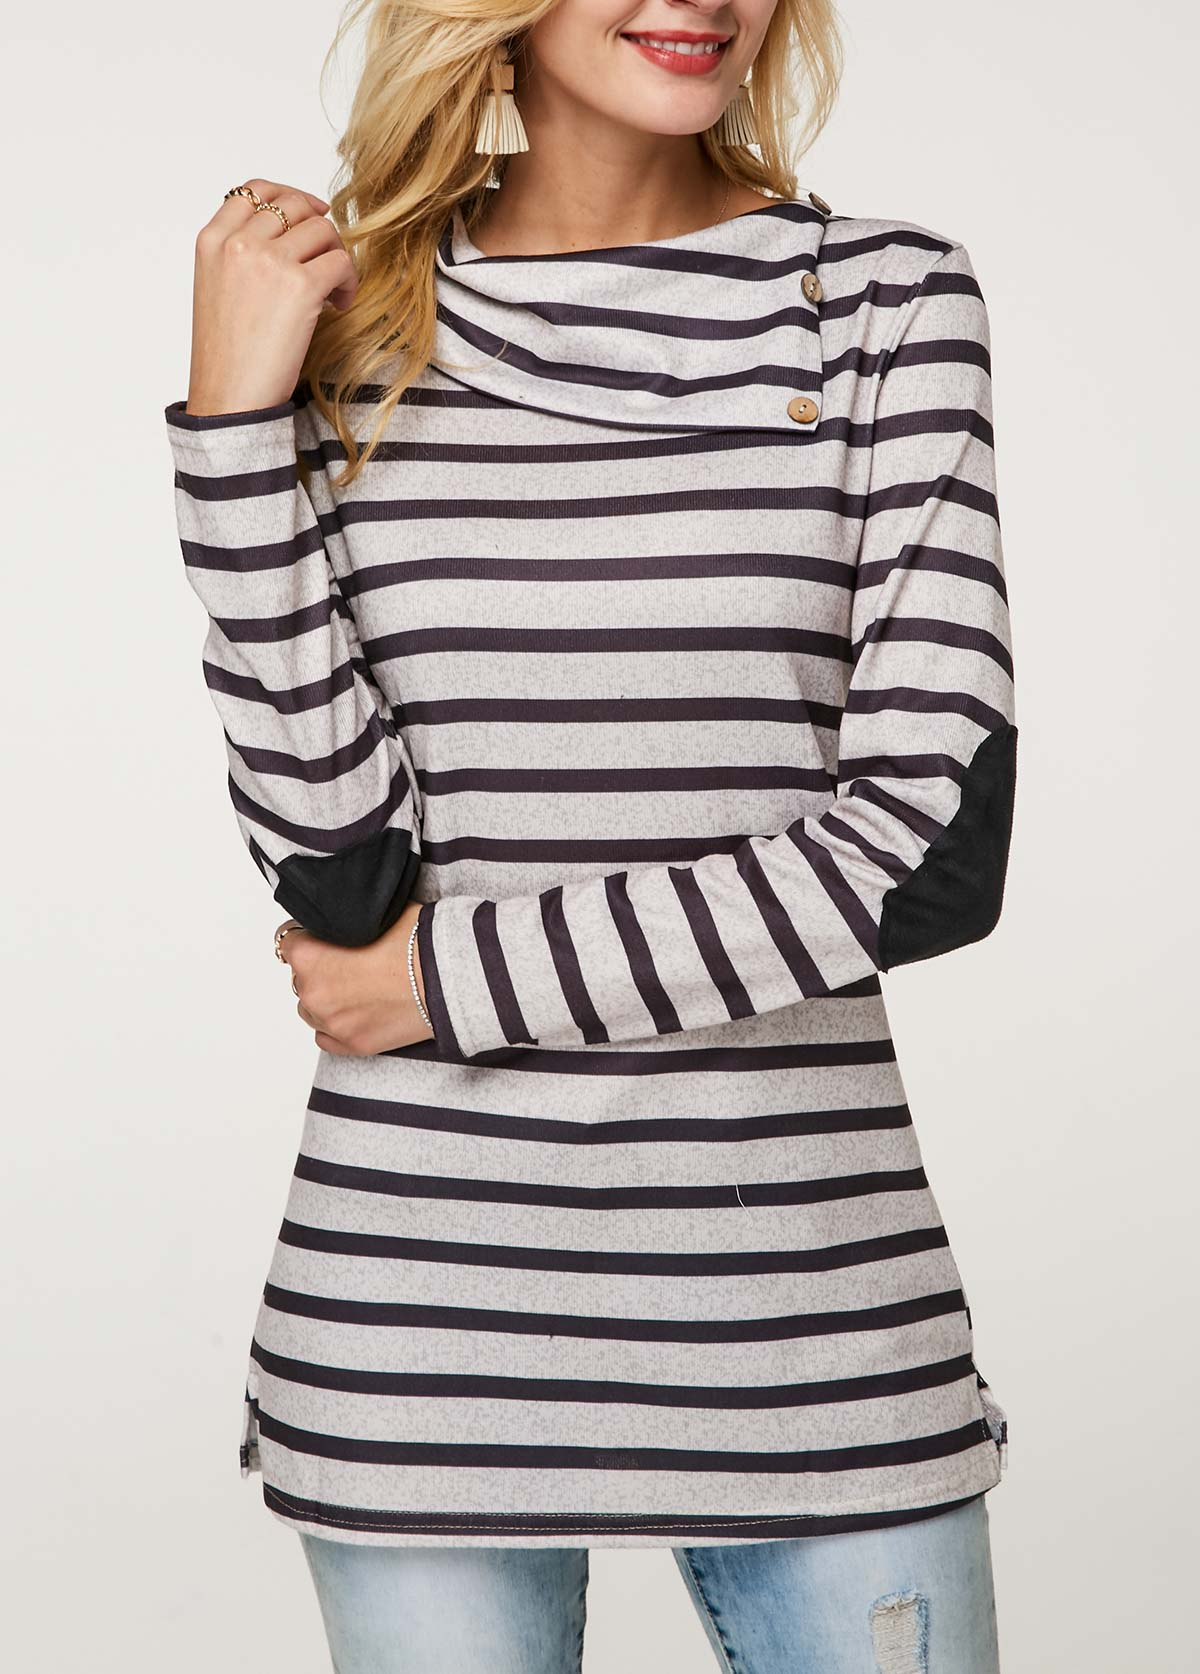 Striped Elbow Patch Long Sleeve T Shirt